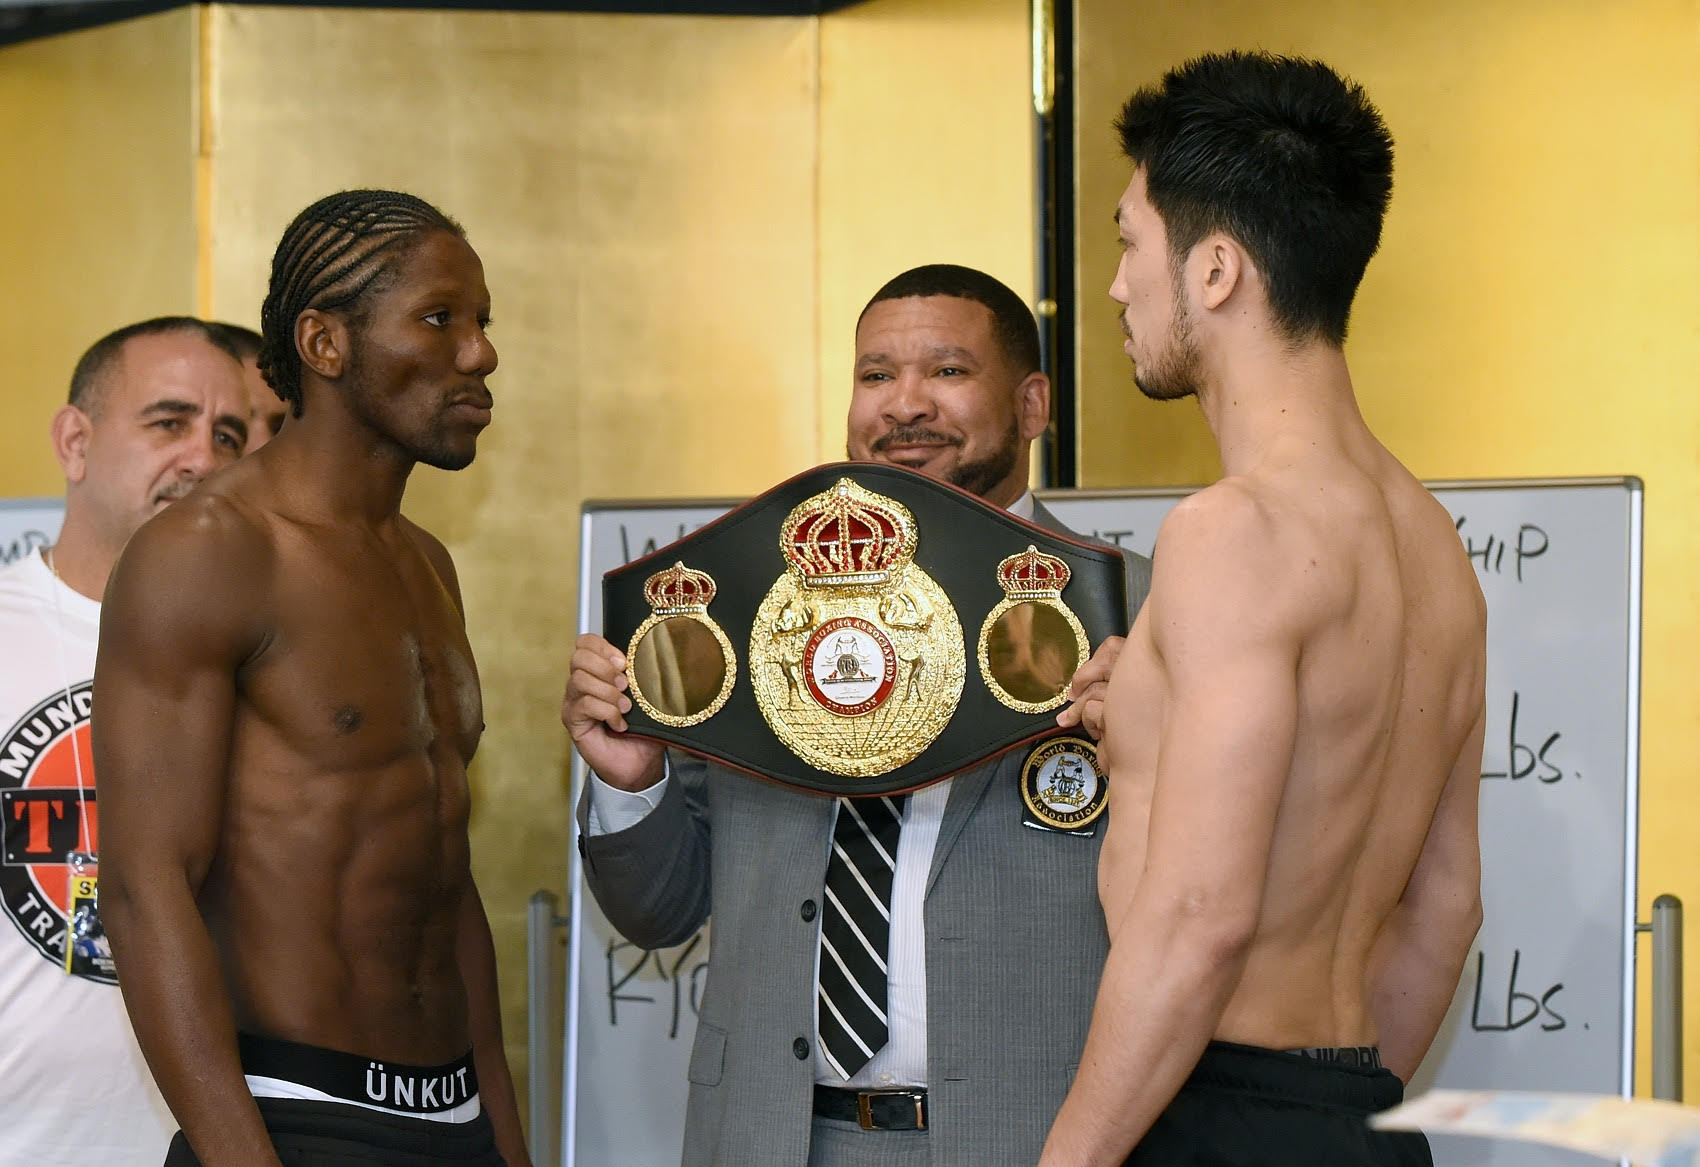 Boxer weigh, naked tiny chinese girls